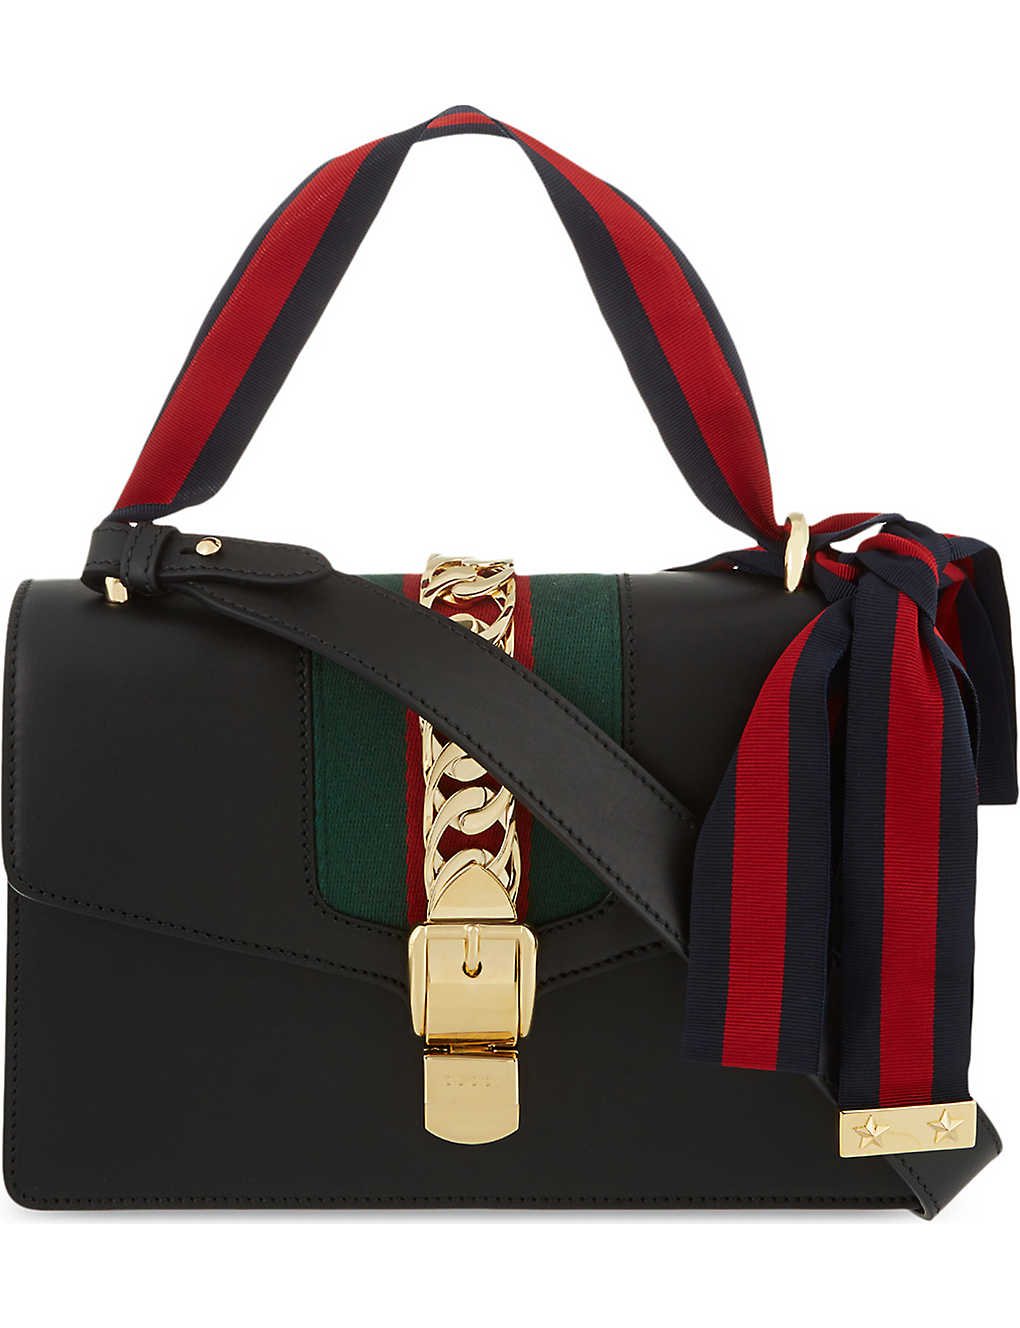 47b6c9afb015 GUCCI - Sylvie leather shoulder bag | Selfridges.com